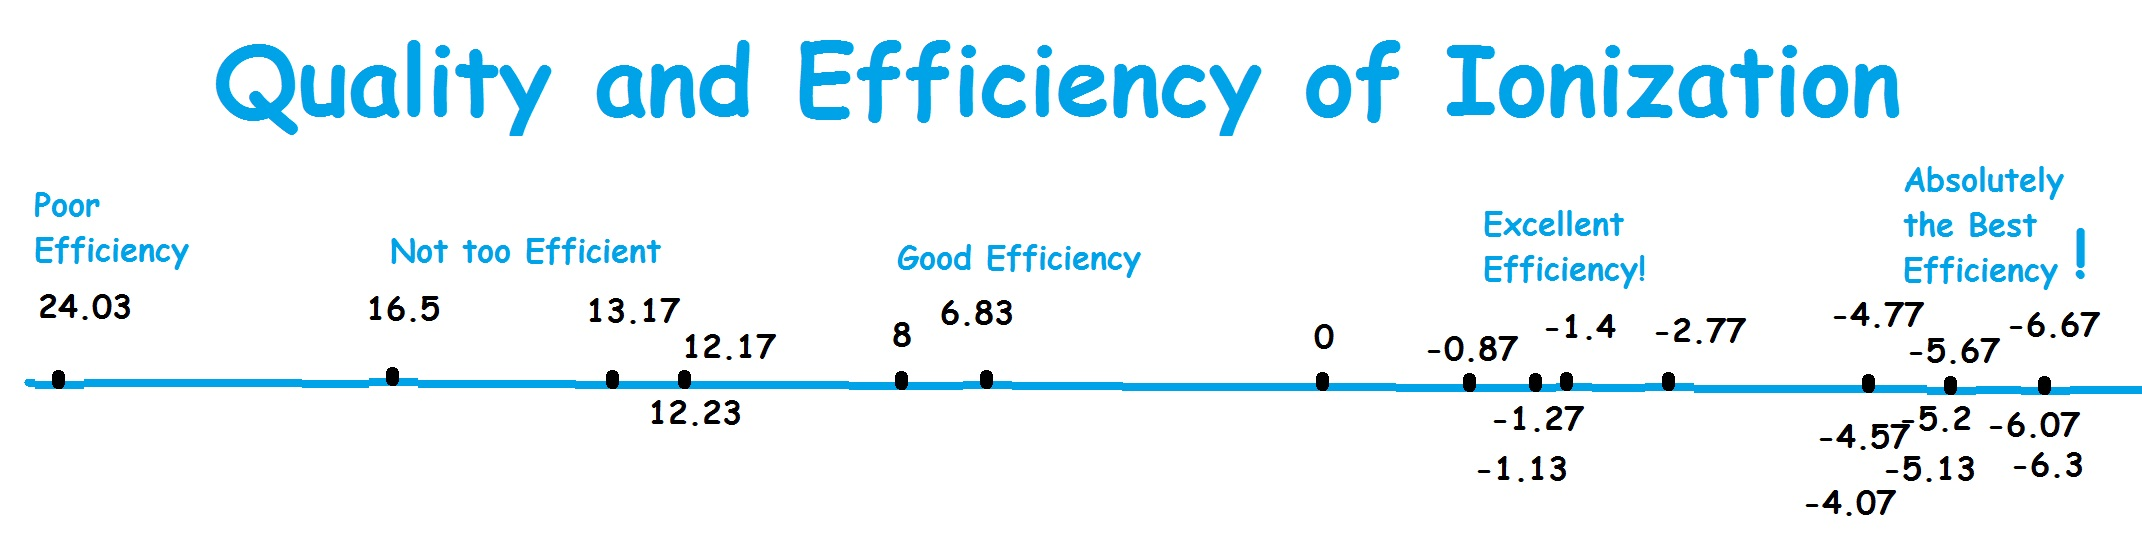 Water Ionizer Comparisons - Quality & Efficiency of Ionization